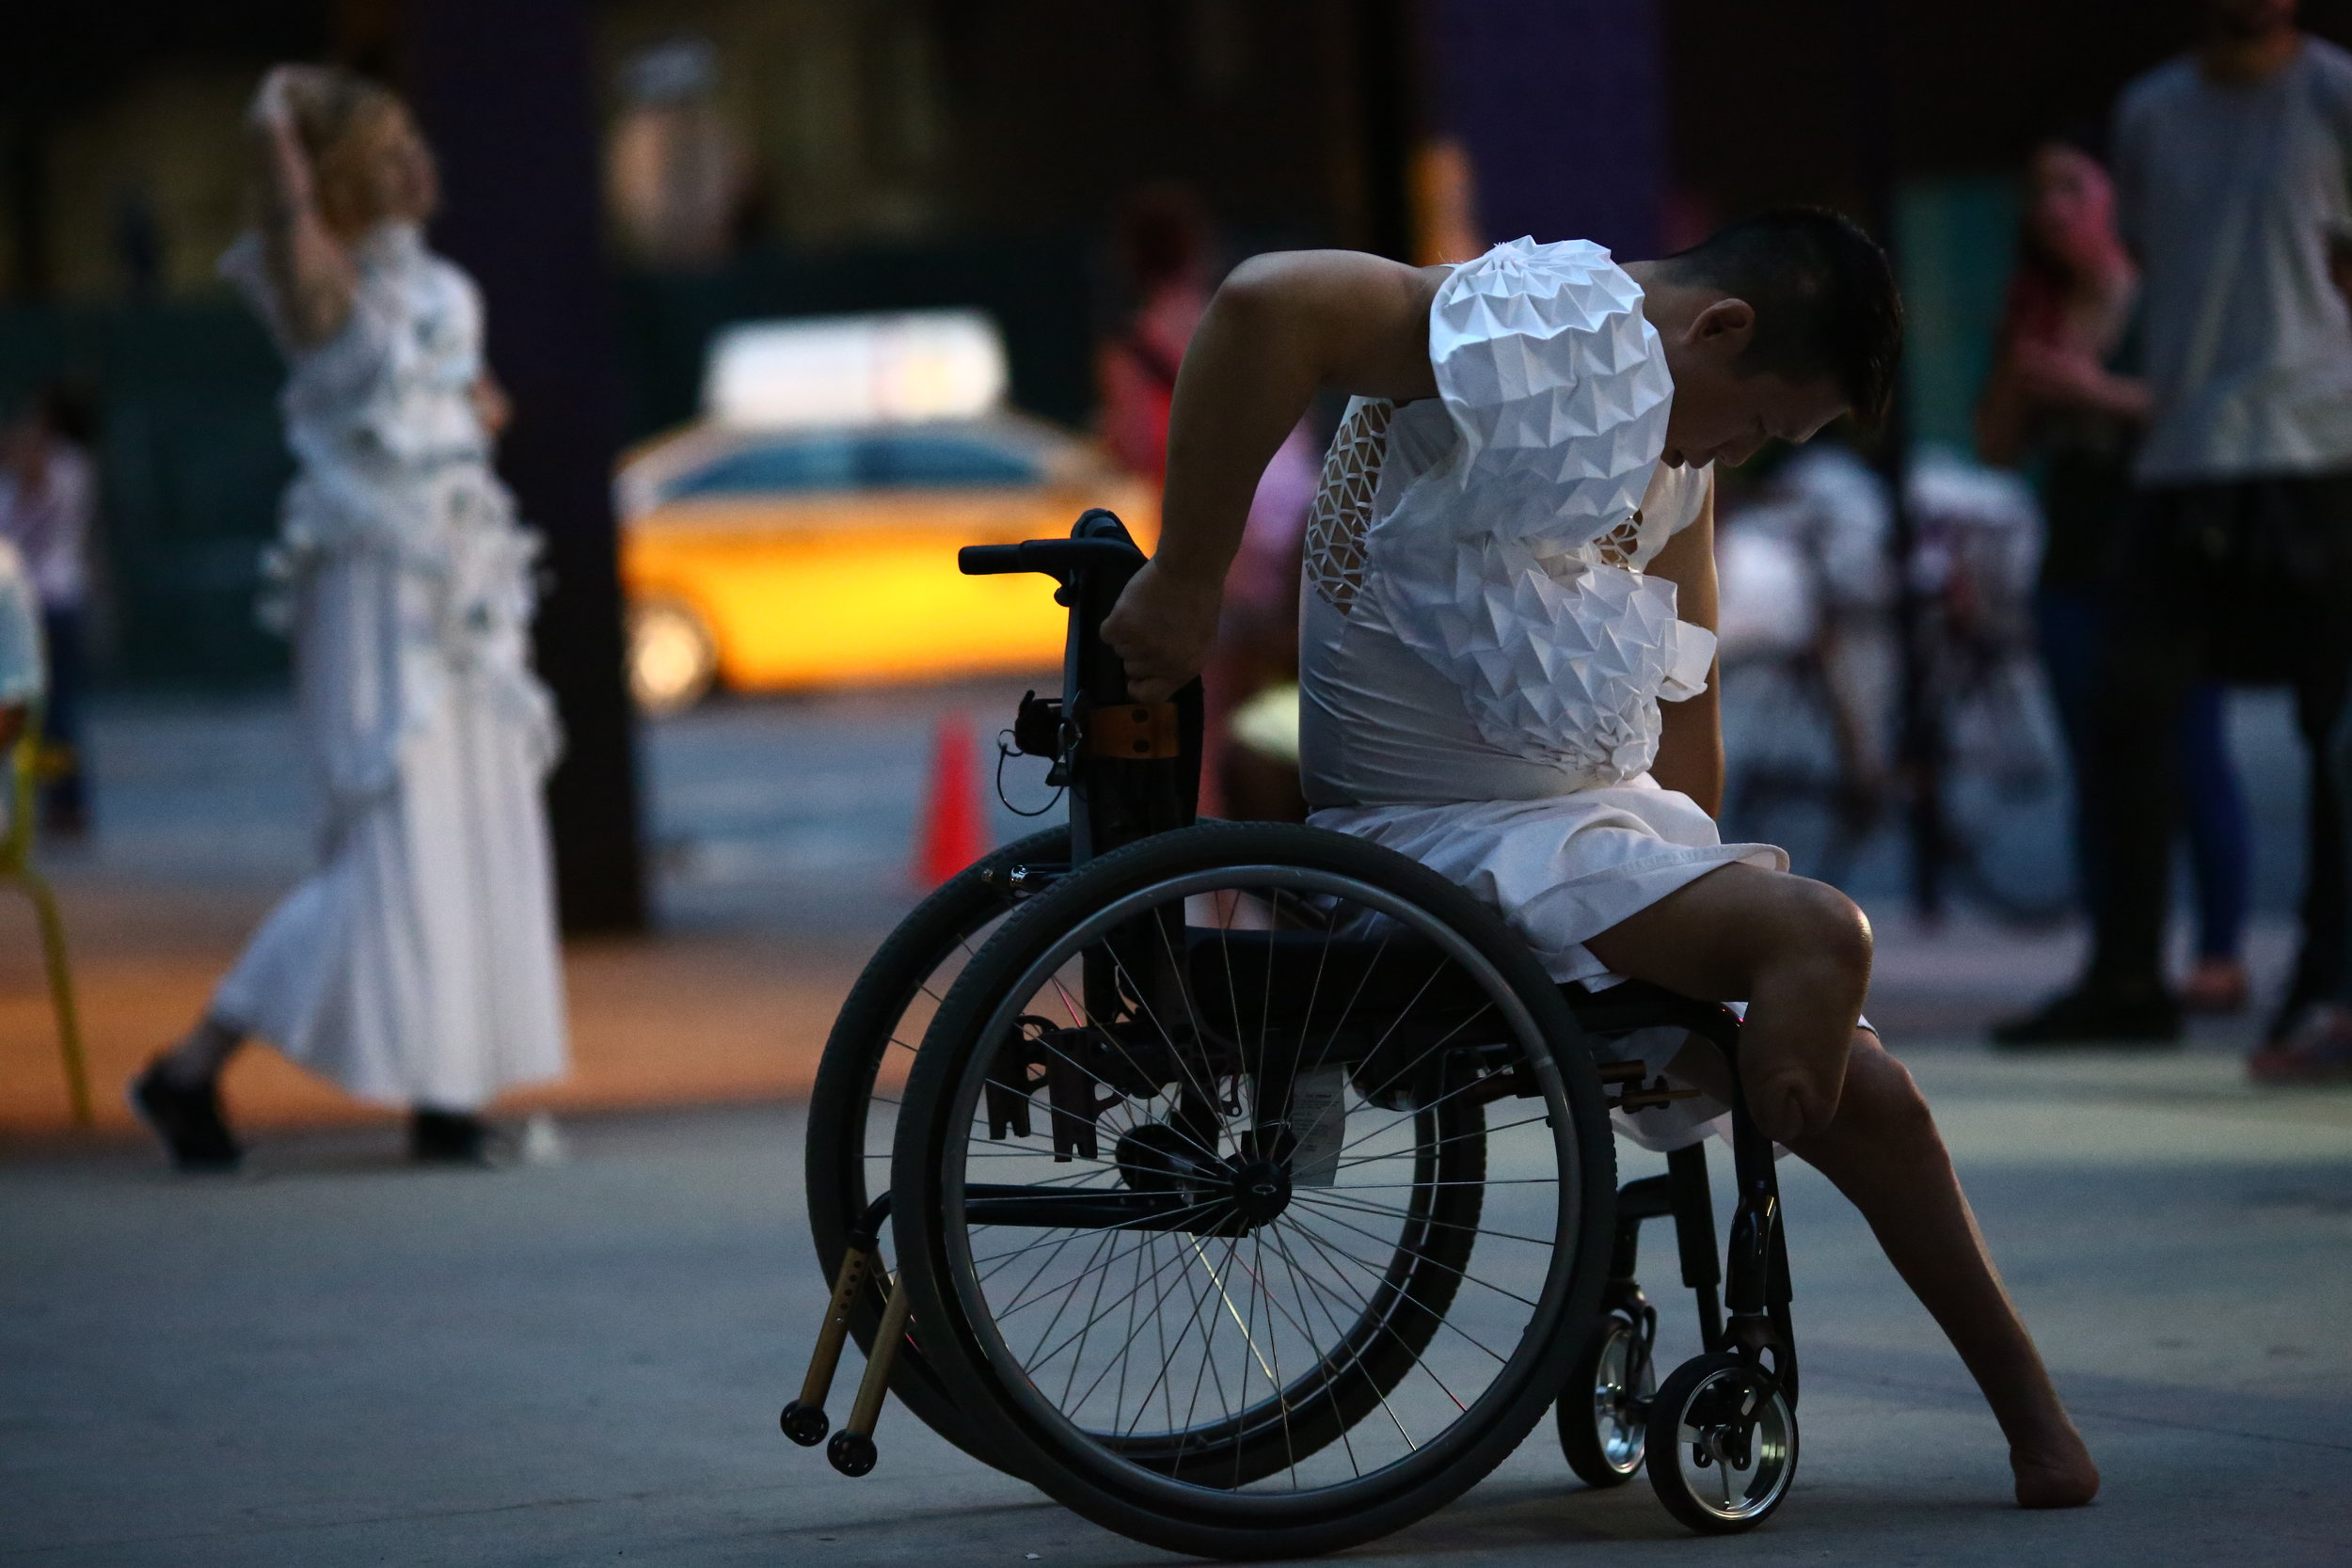 color photo of man sitting in his wheelchair wearing an embellished white shirt, extending his left leg onto the ground, looking down